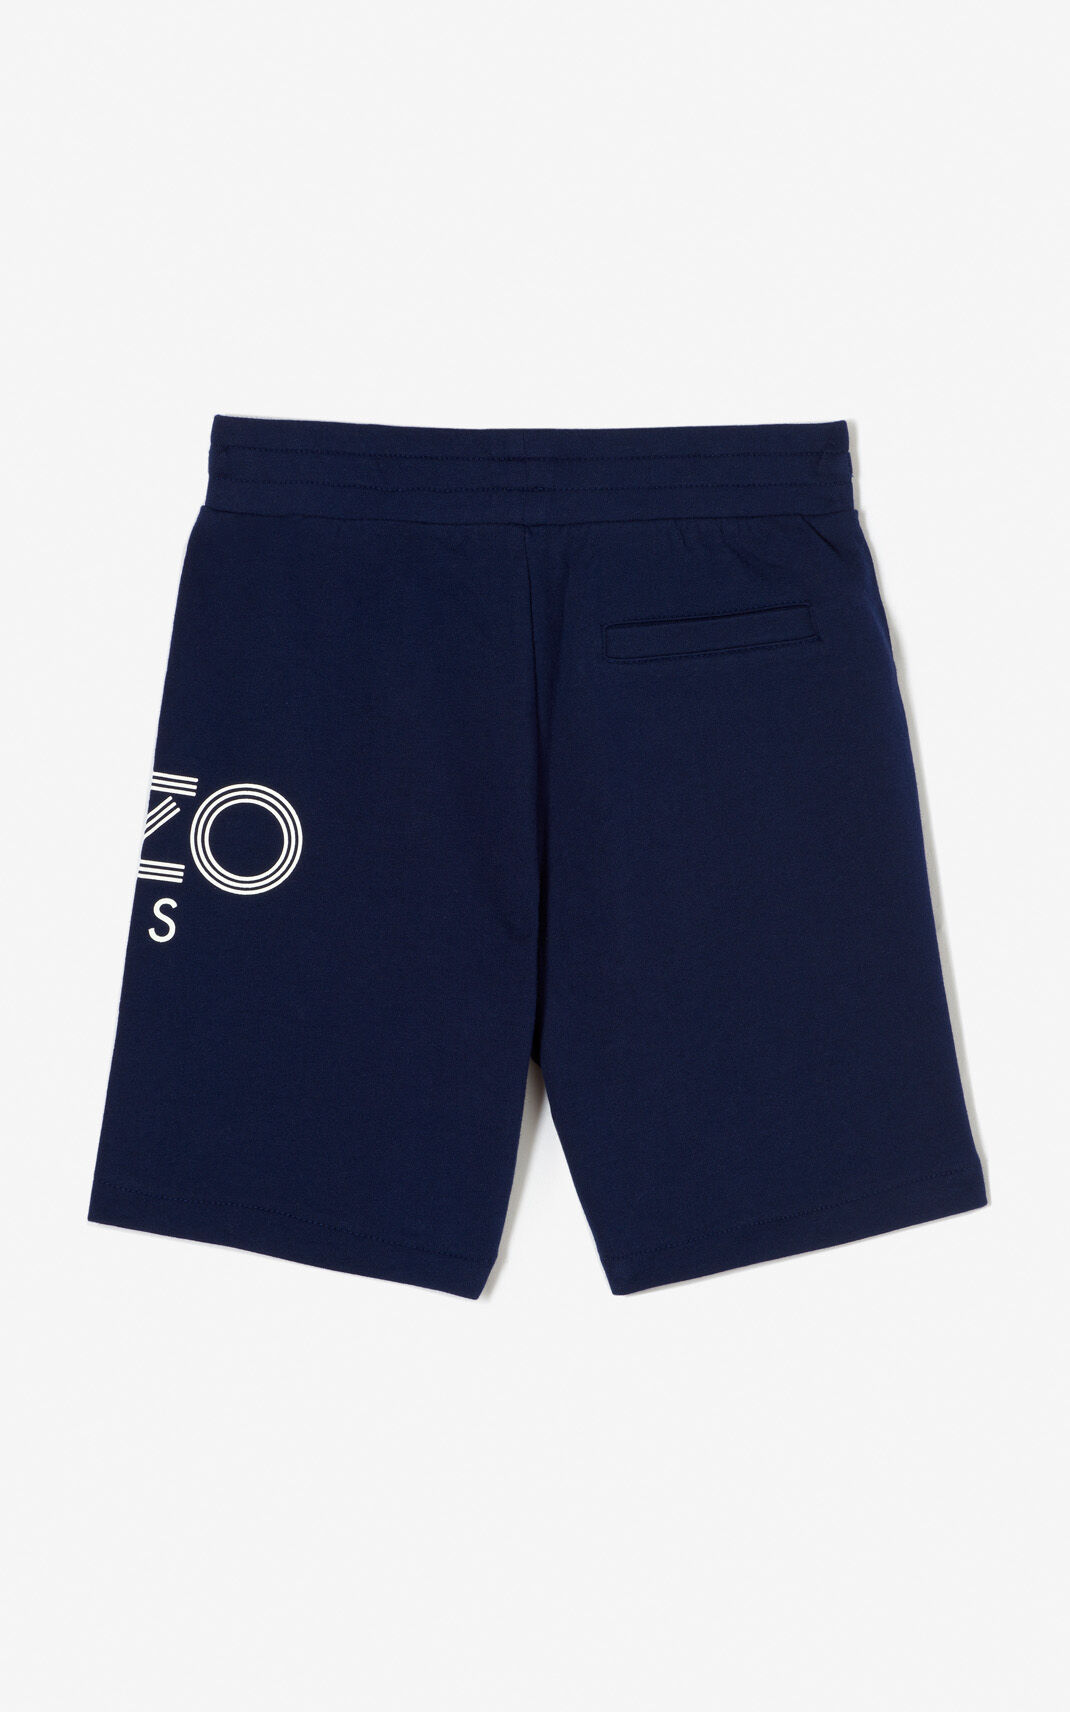 NAVY BLUE KENZO Logo bermuda shorts for men